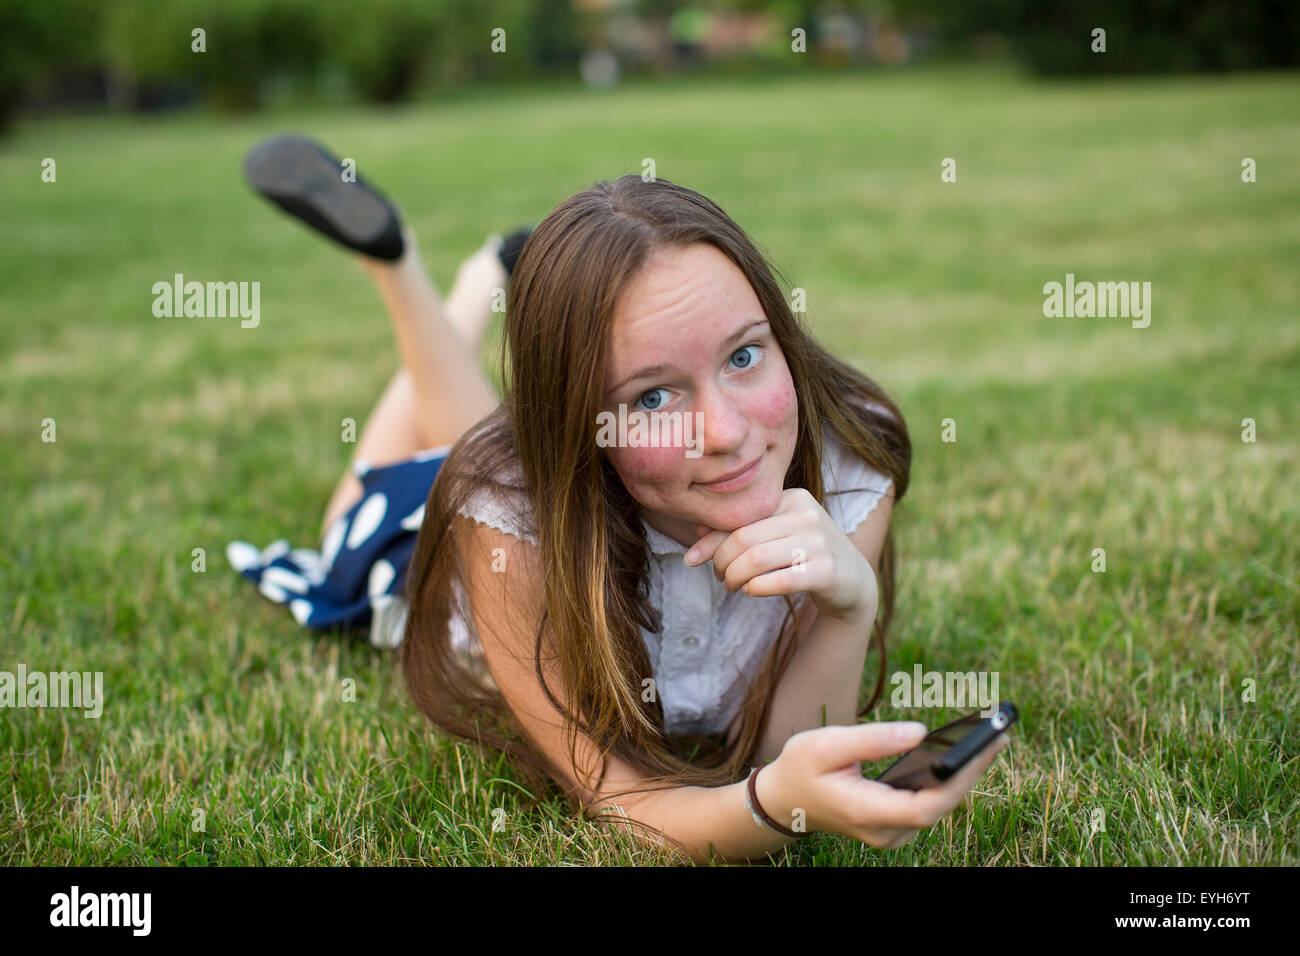 cute teen girl with a smartphone in hands of lying on green grass stock photo 85815852 alamy - Cute Teen Com